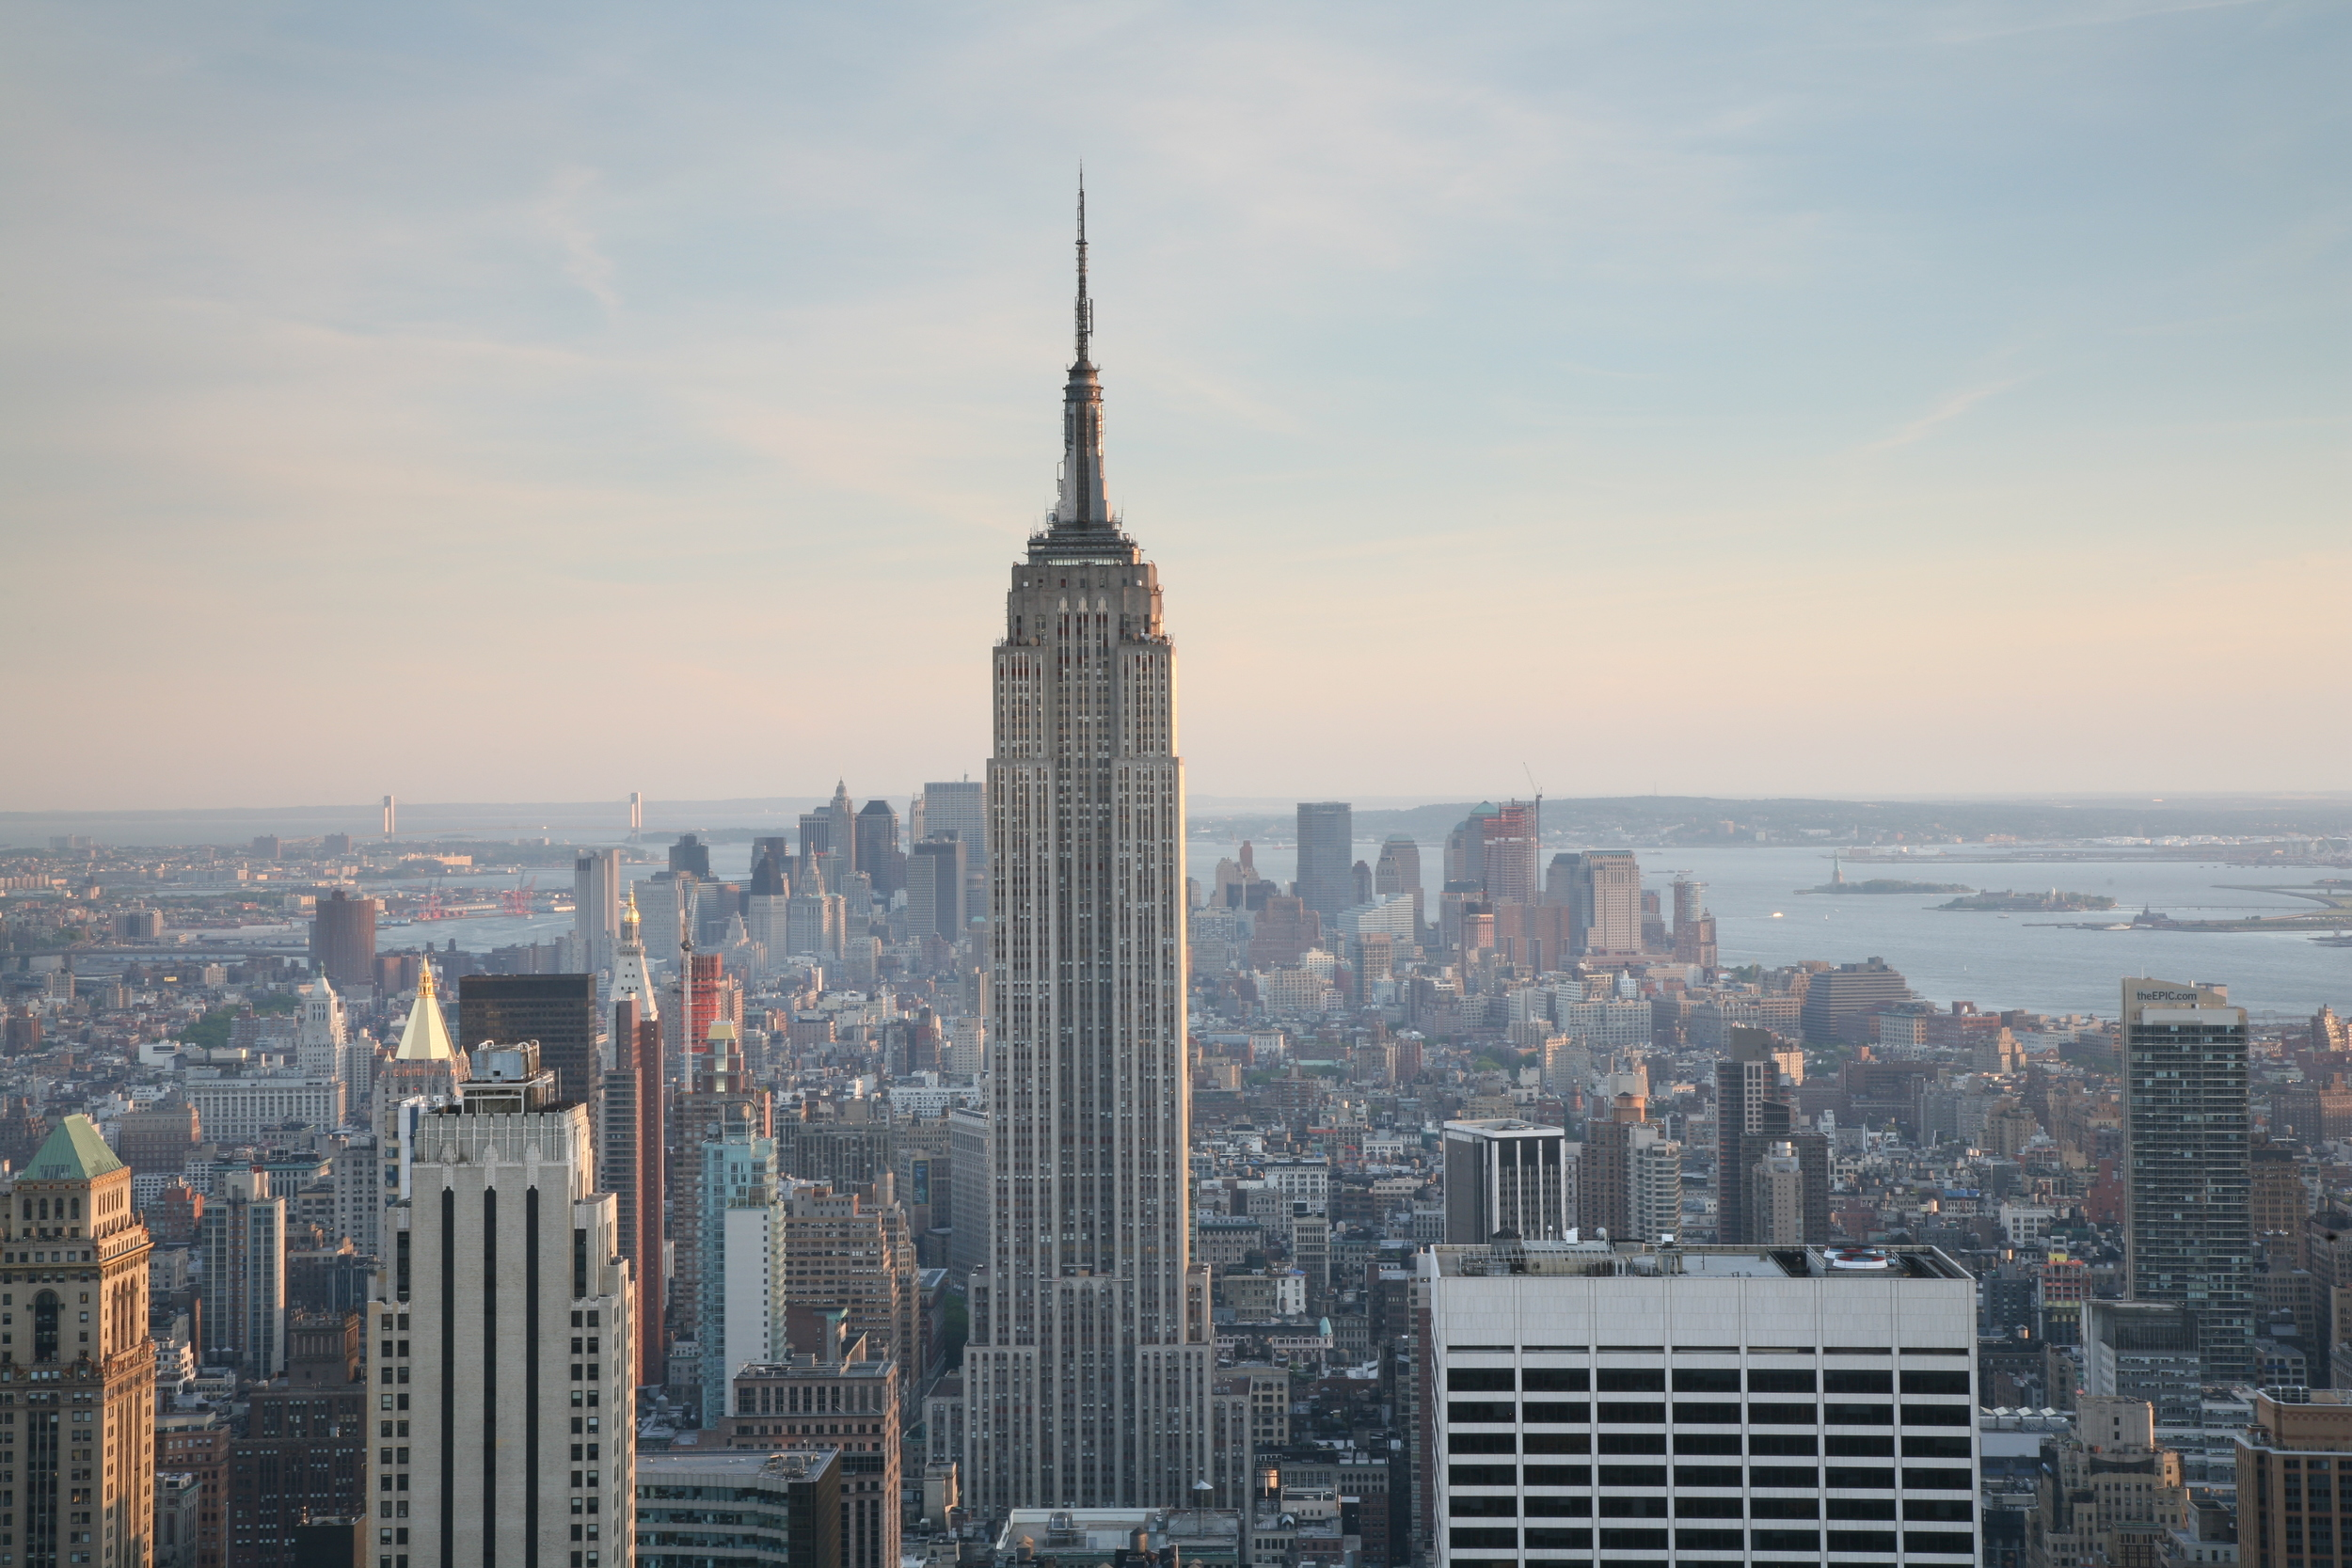 There is no chance the Empire State Building is abandoned because the street in front of it can't be maintained. You can't say the same about your suburban tract house.